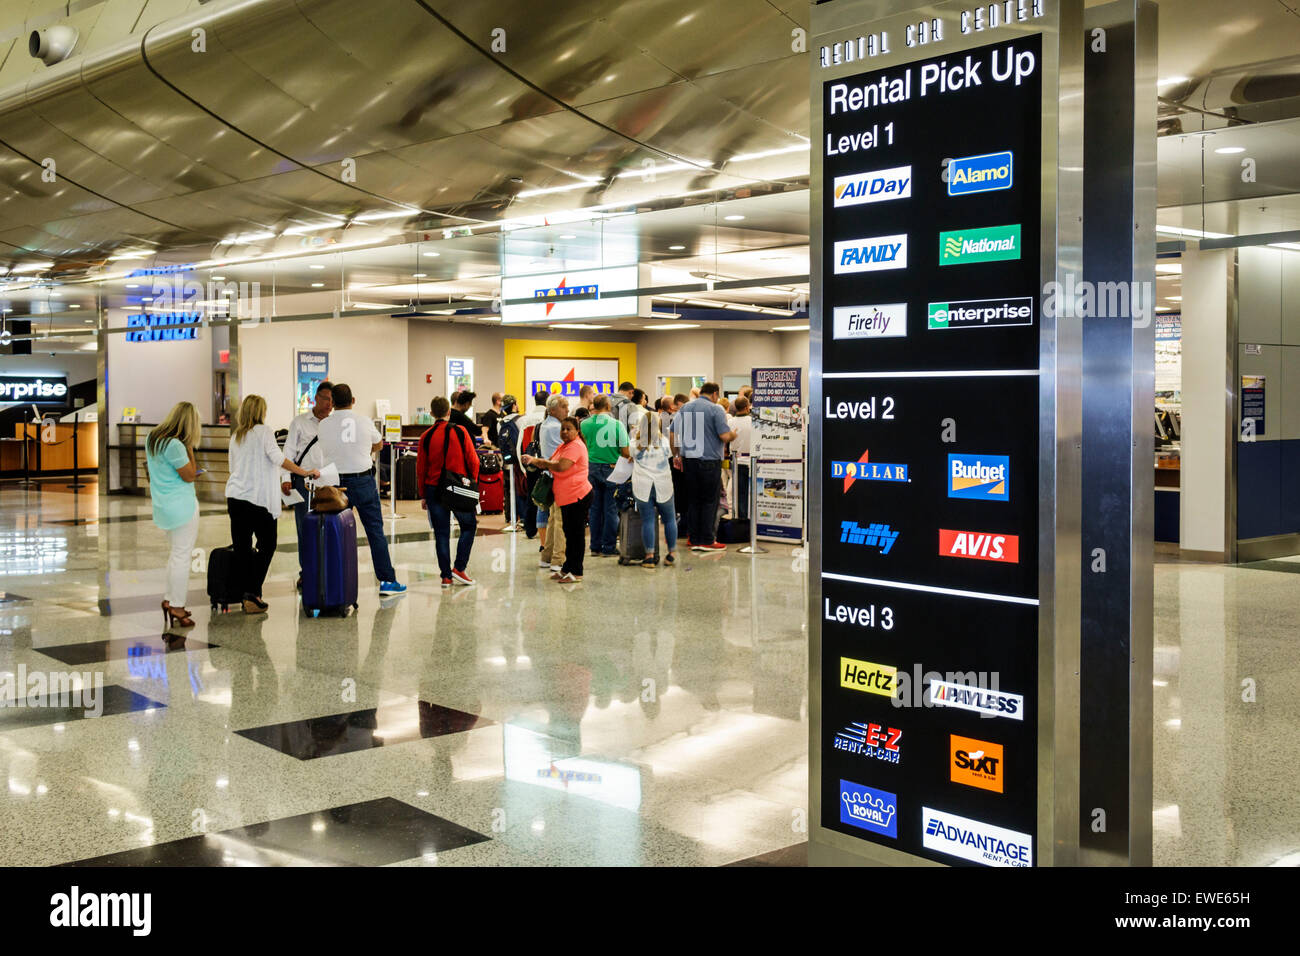 rental car center stockfotos & rental car center bilder - alamy